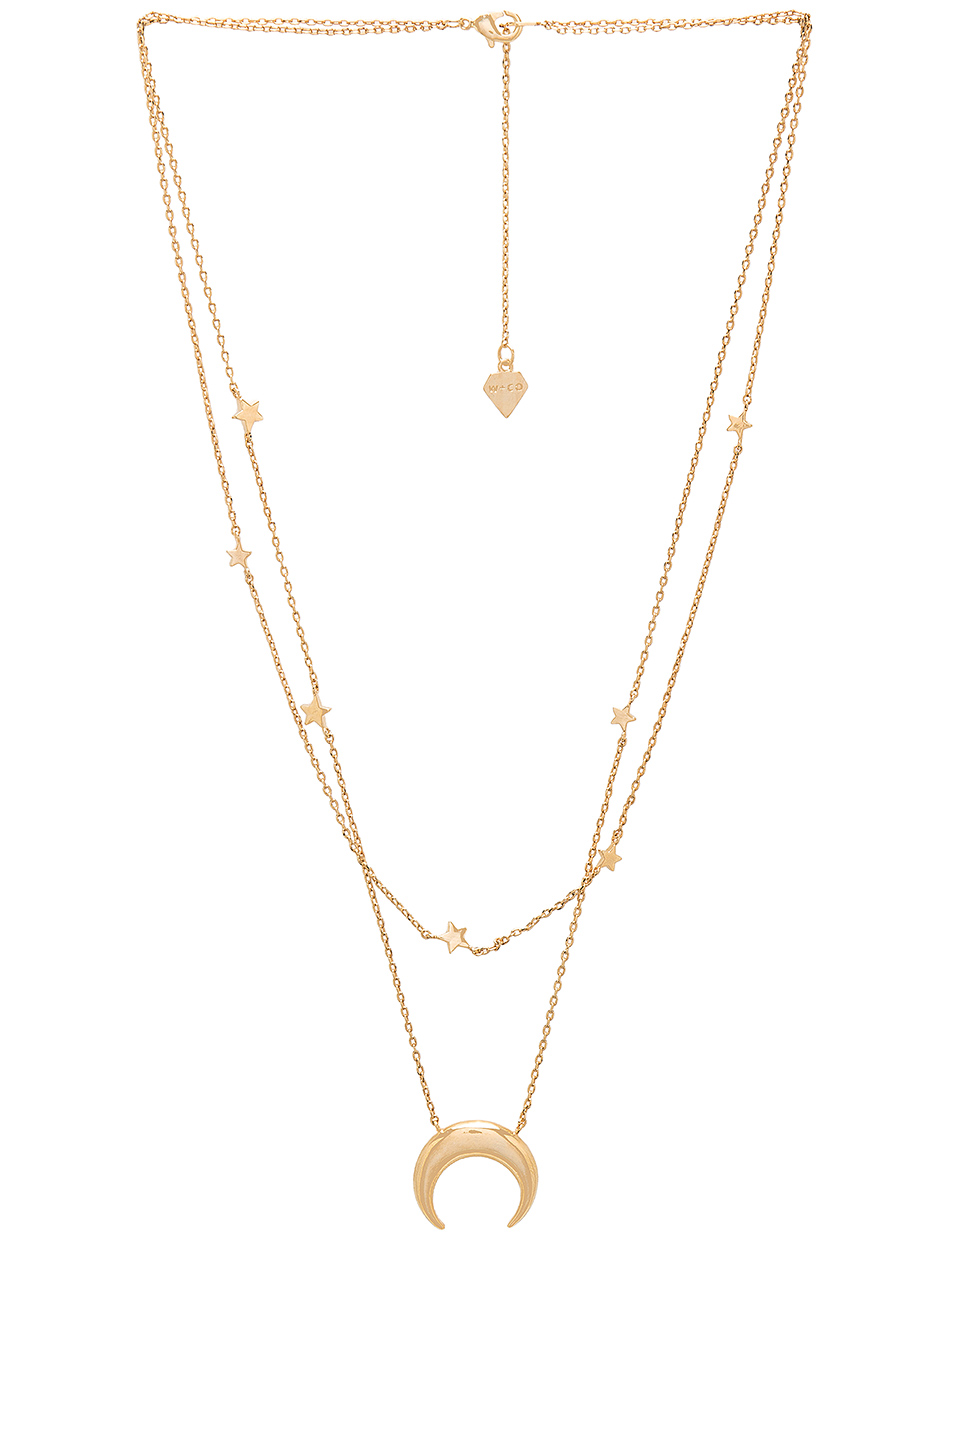 Wanderlust + Co Crescent & Constellation Necklace in Gold